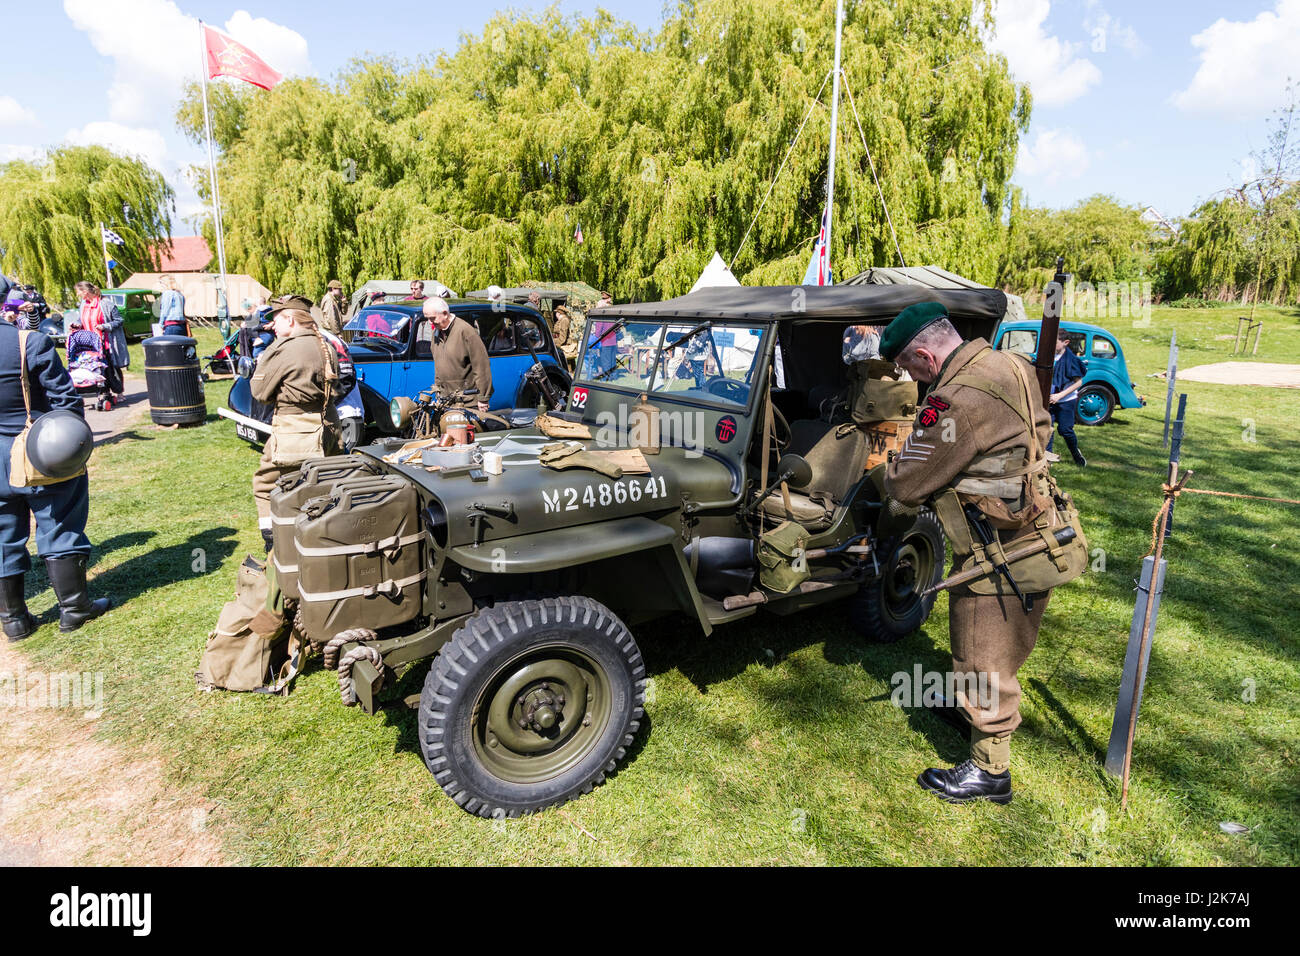 Salute to the 40s re-enactment event. Various vehicles tents and displays on grass area with people wandering around looking and chatting. & Salute to the 40s re-enactment event. Various vehicles tents and ...